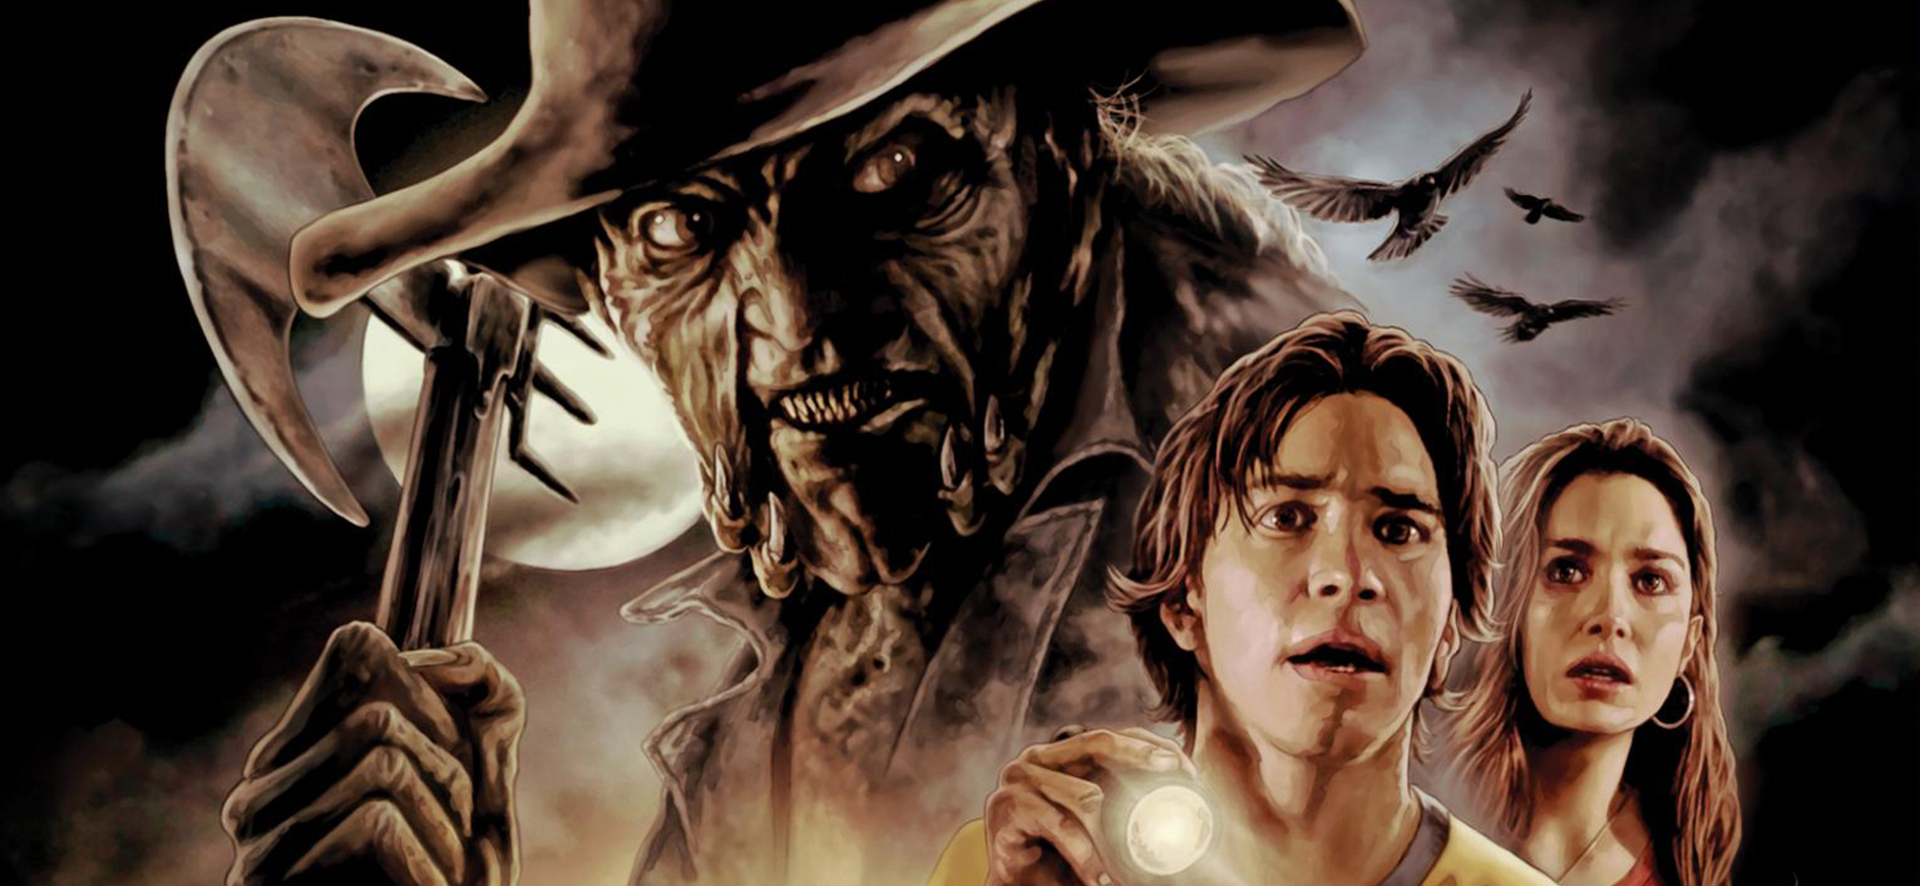 Darry played by Justin Long and Trish played by Gina Phillips look beyond the camera in horror while the Creeper, brandishing an axe, looms in the background of the image